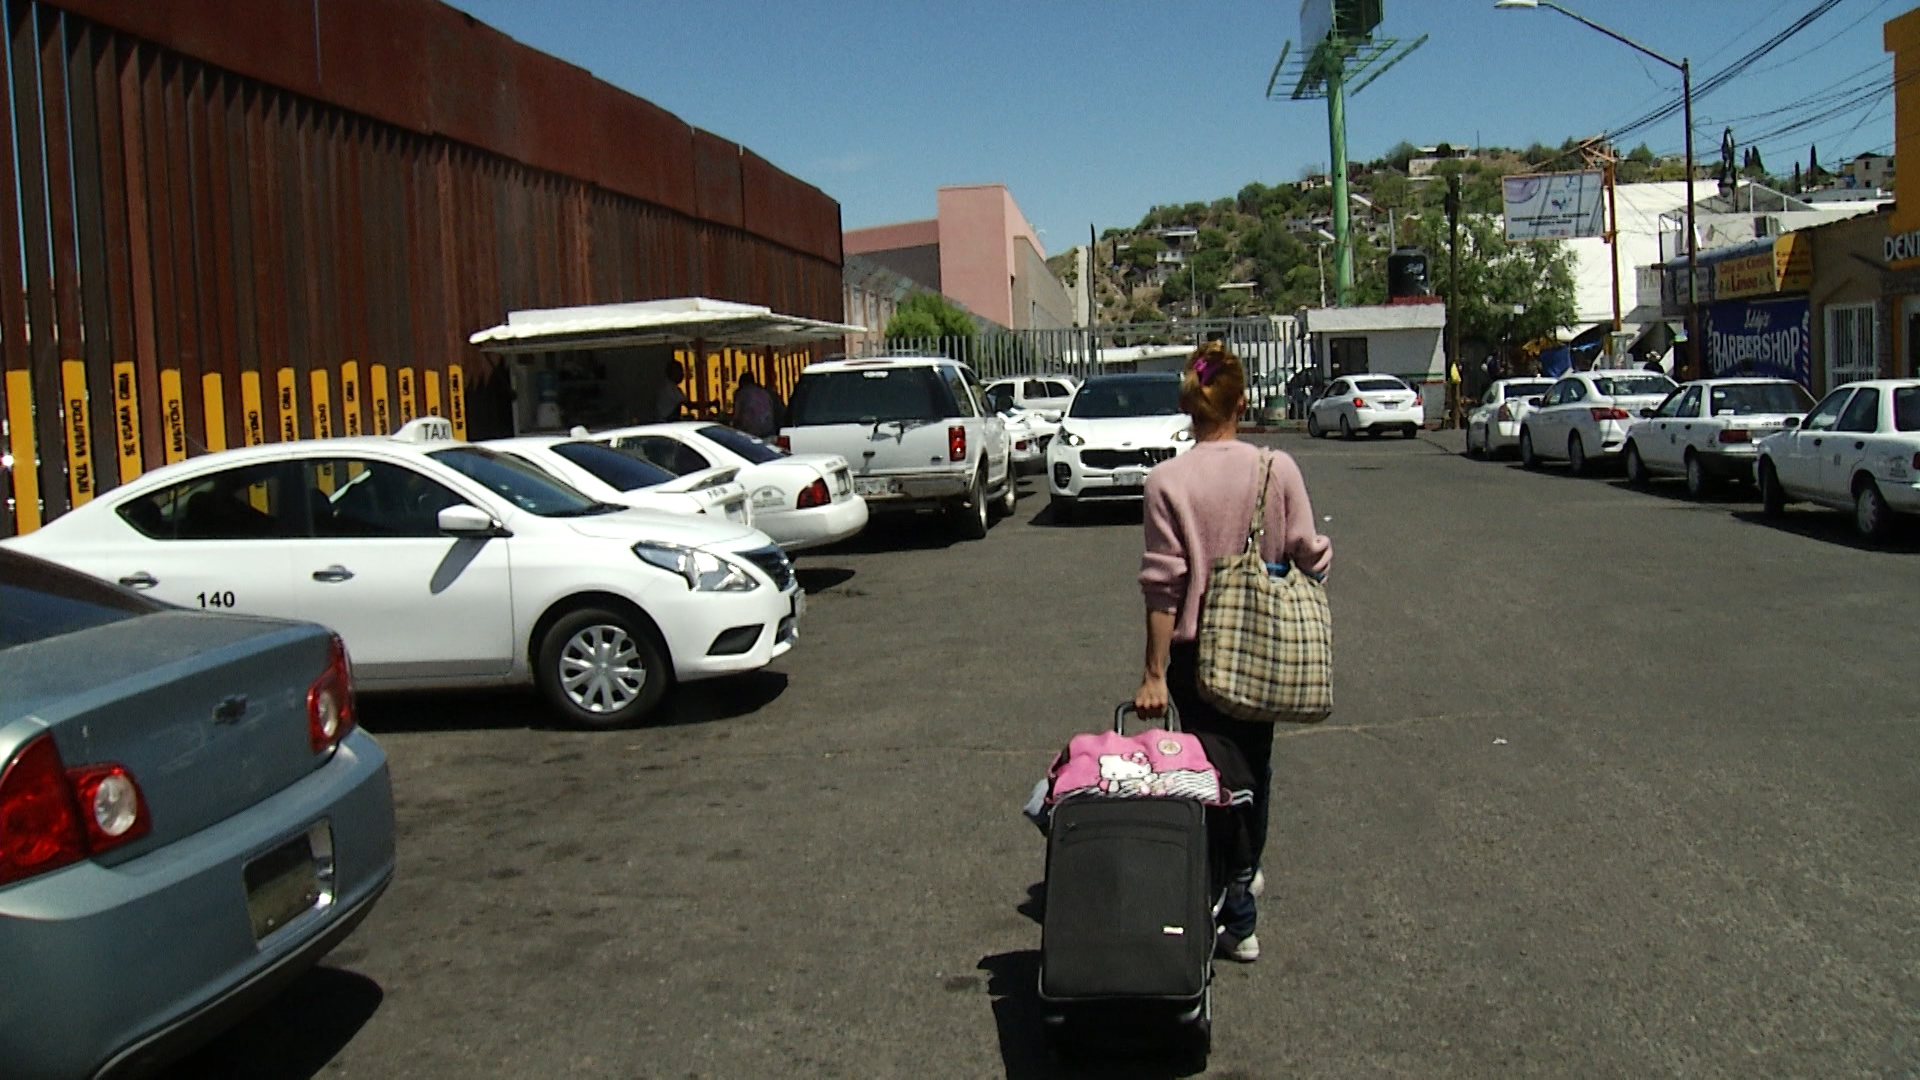 Nicol carries her luggage to the port of entry in Nogales to seek asylum.